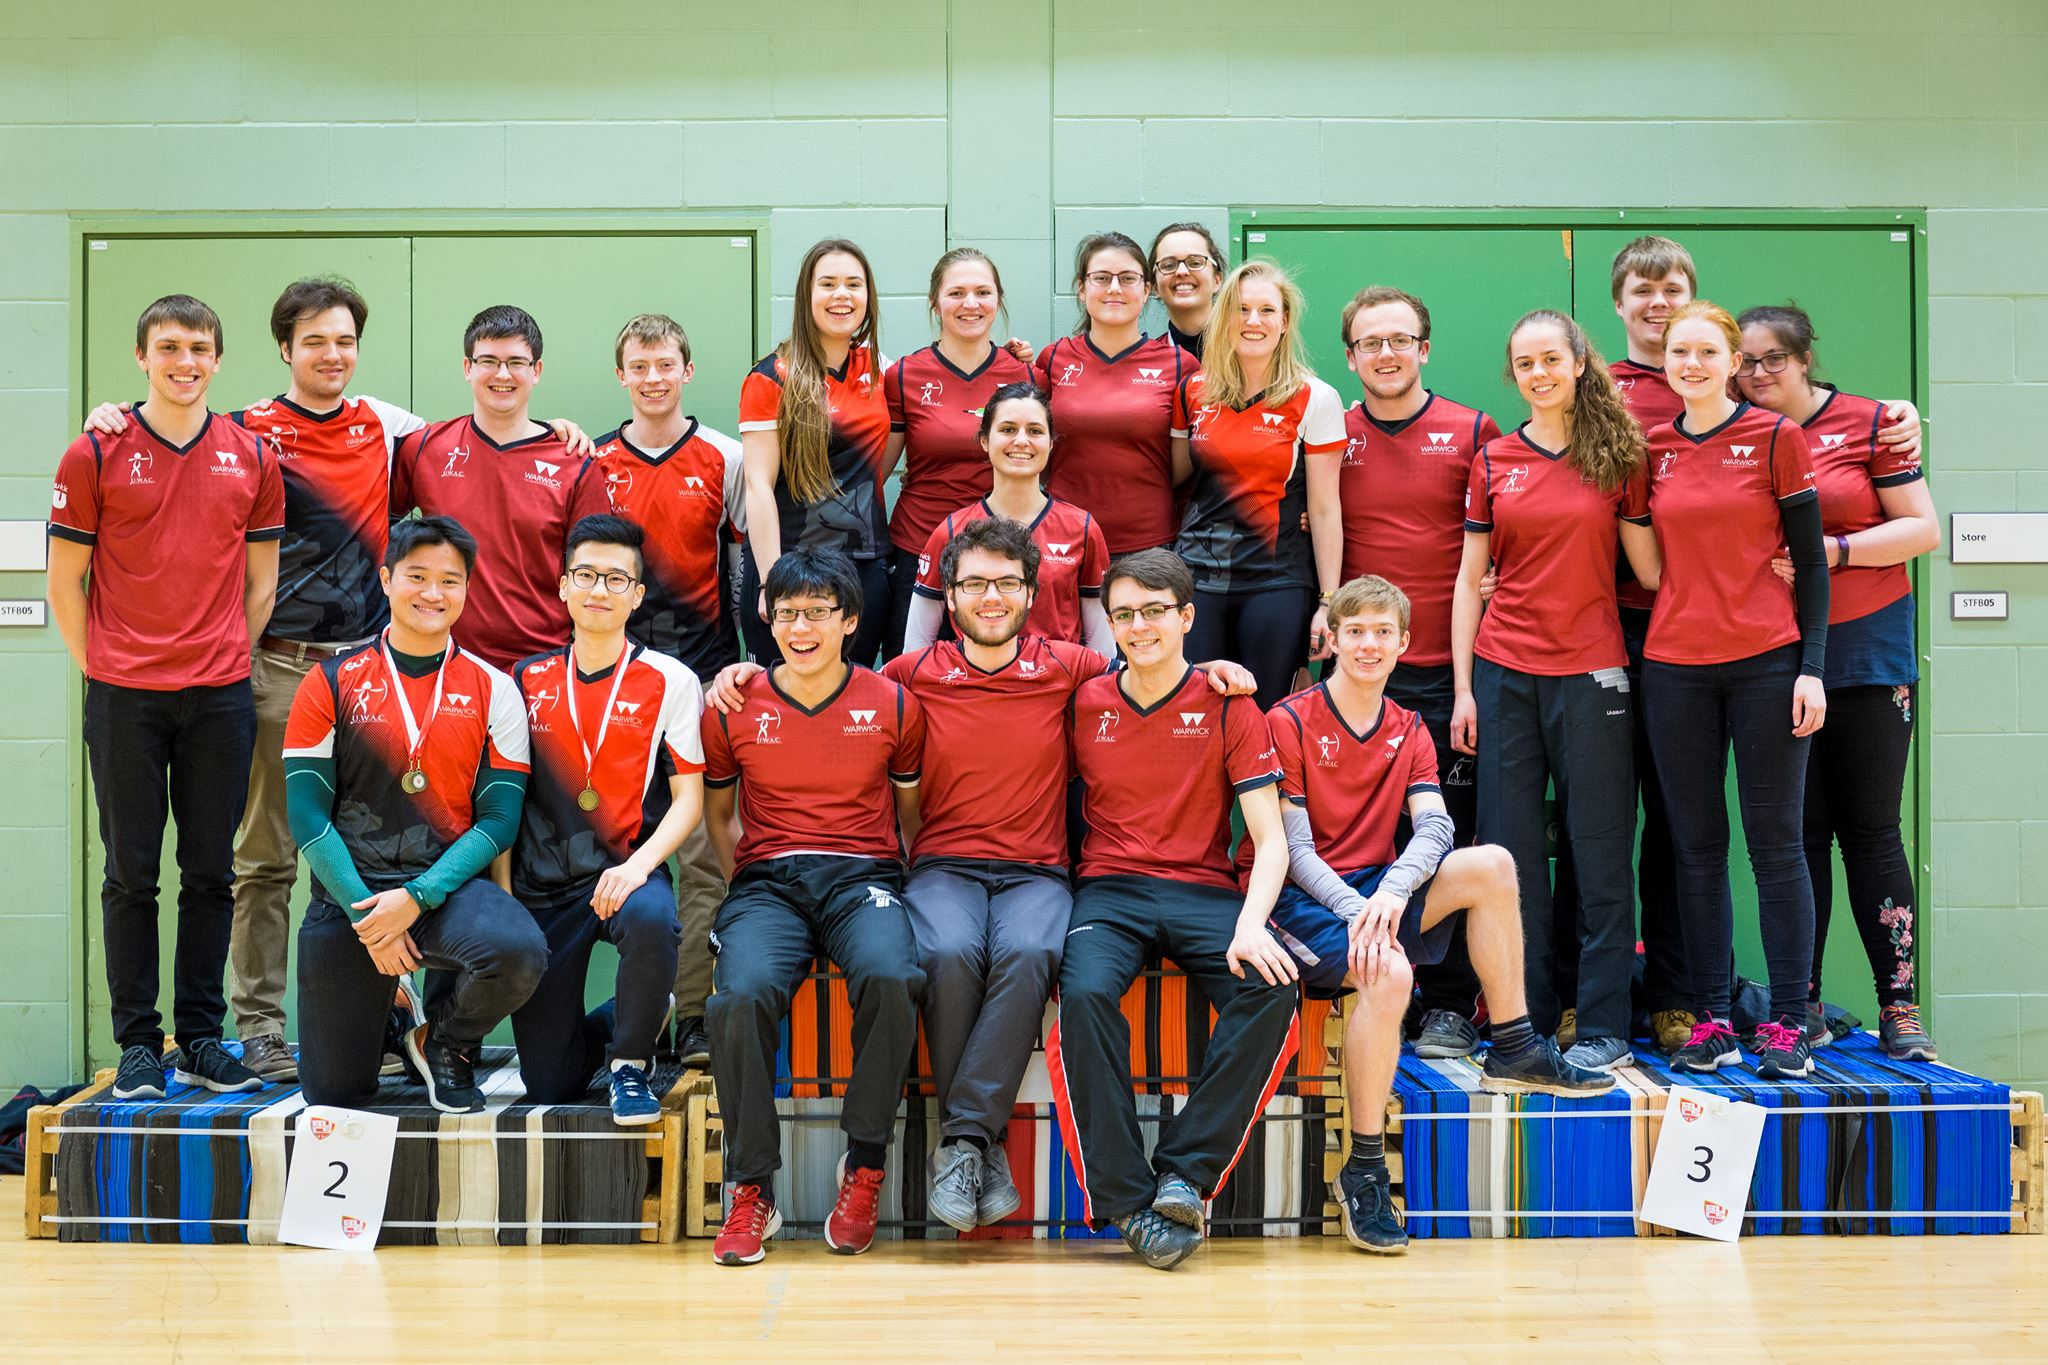 University of Warwick Archery Club